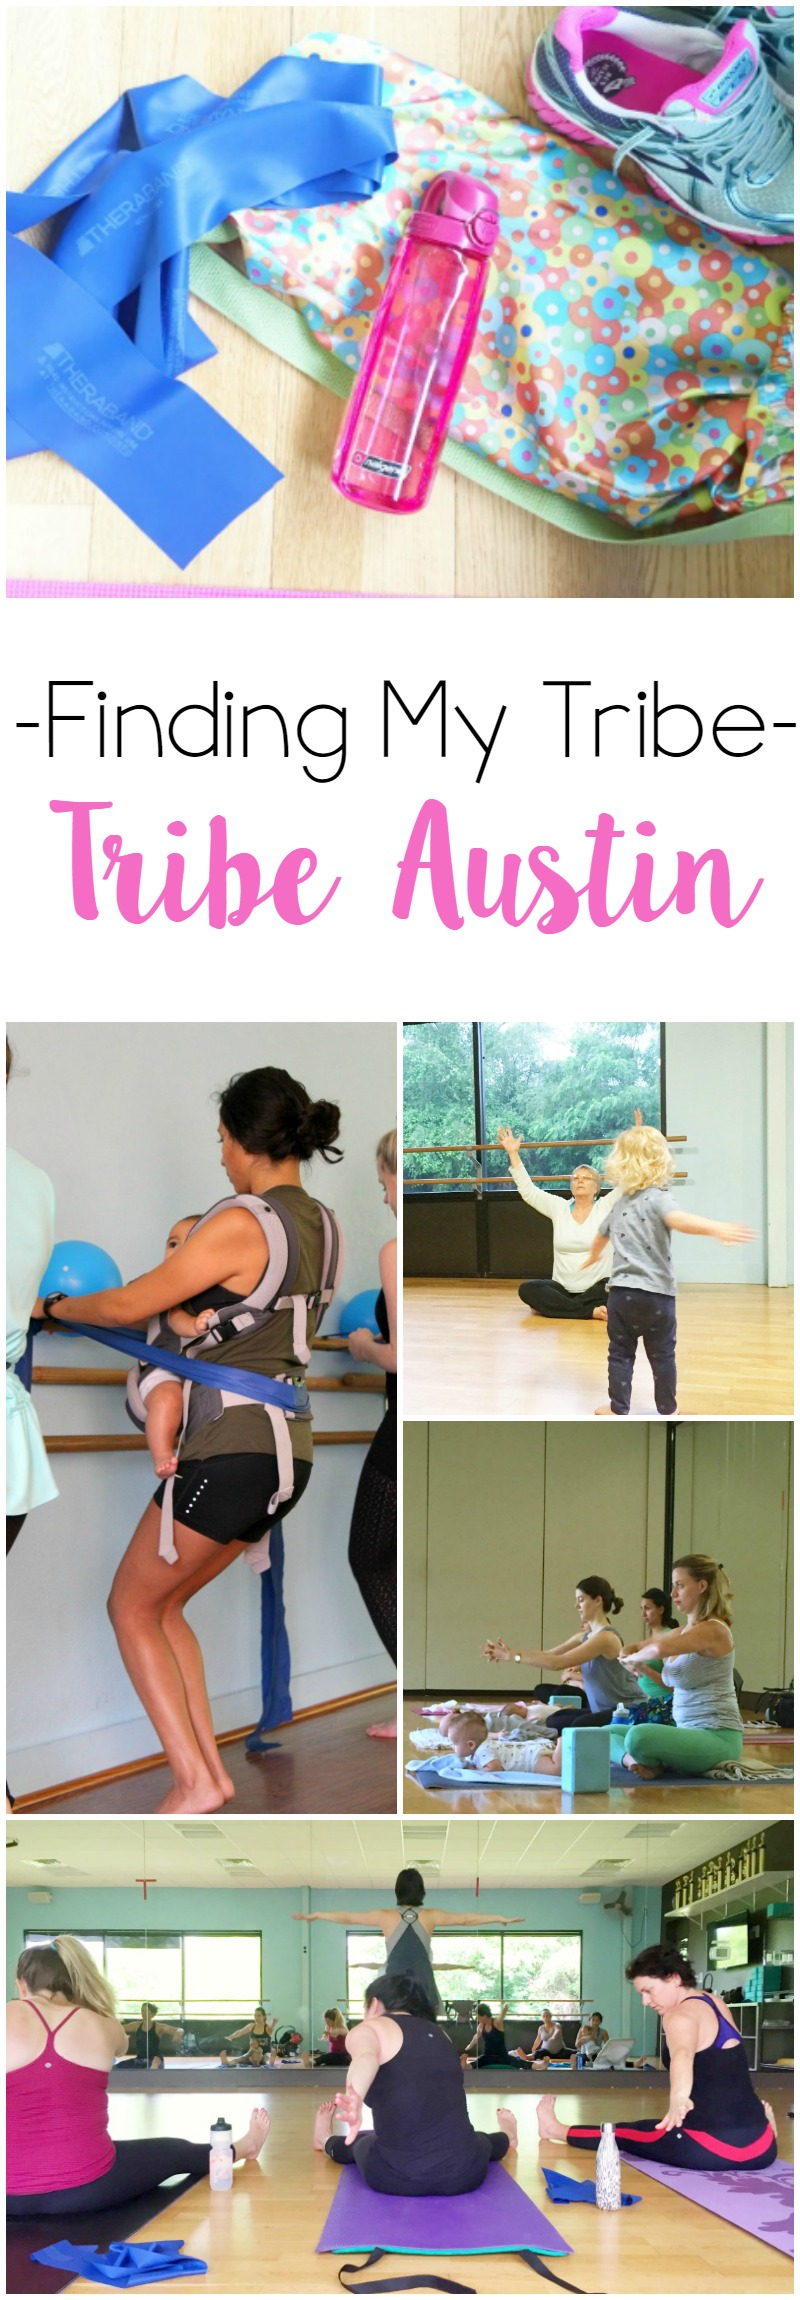 Finding My Tribe st Tribe Austin // Life Anchored ad